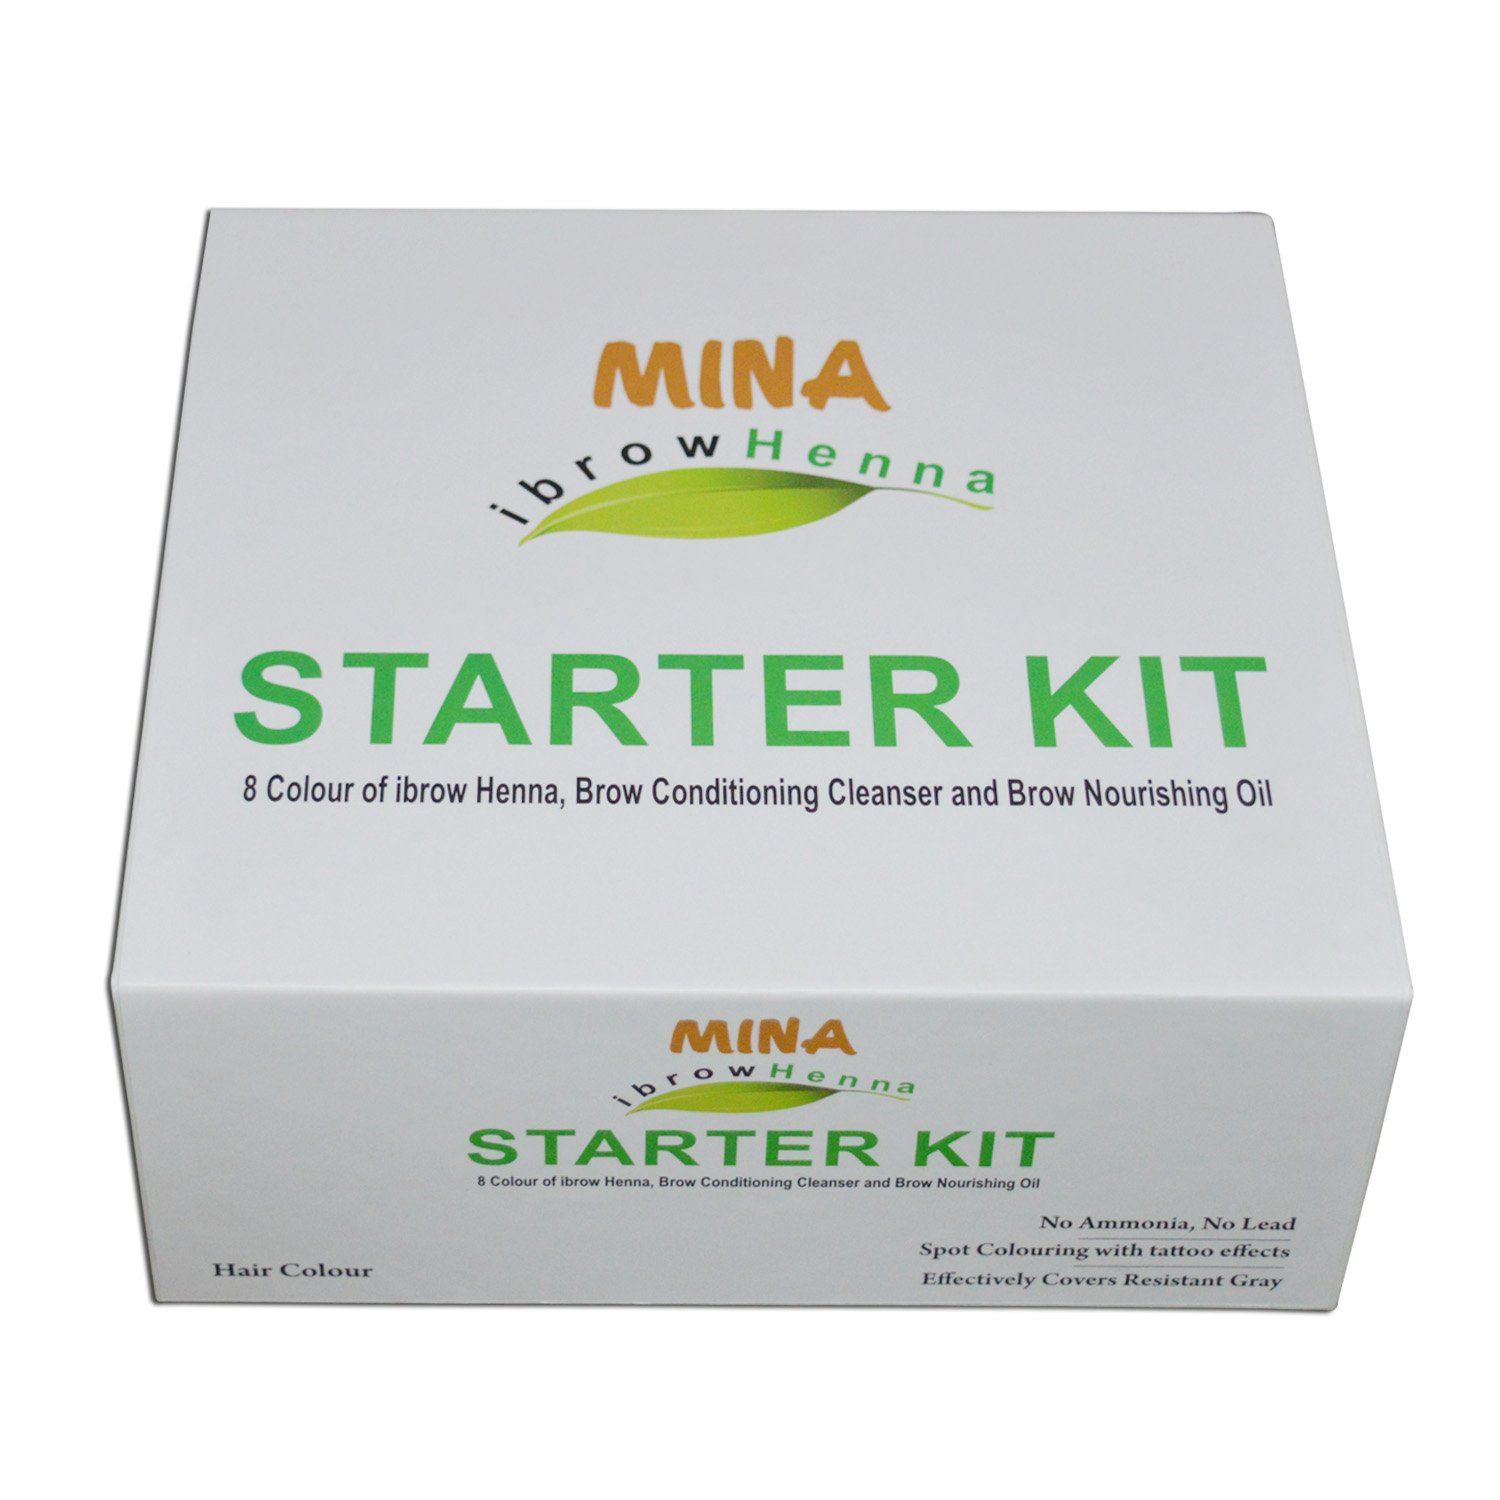 MINA I brow Henna Starter Kit (8 Colors of Ibrow henna,Brow Conditioning Cleanser & Brow Nourishing Oil by Mina